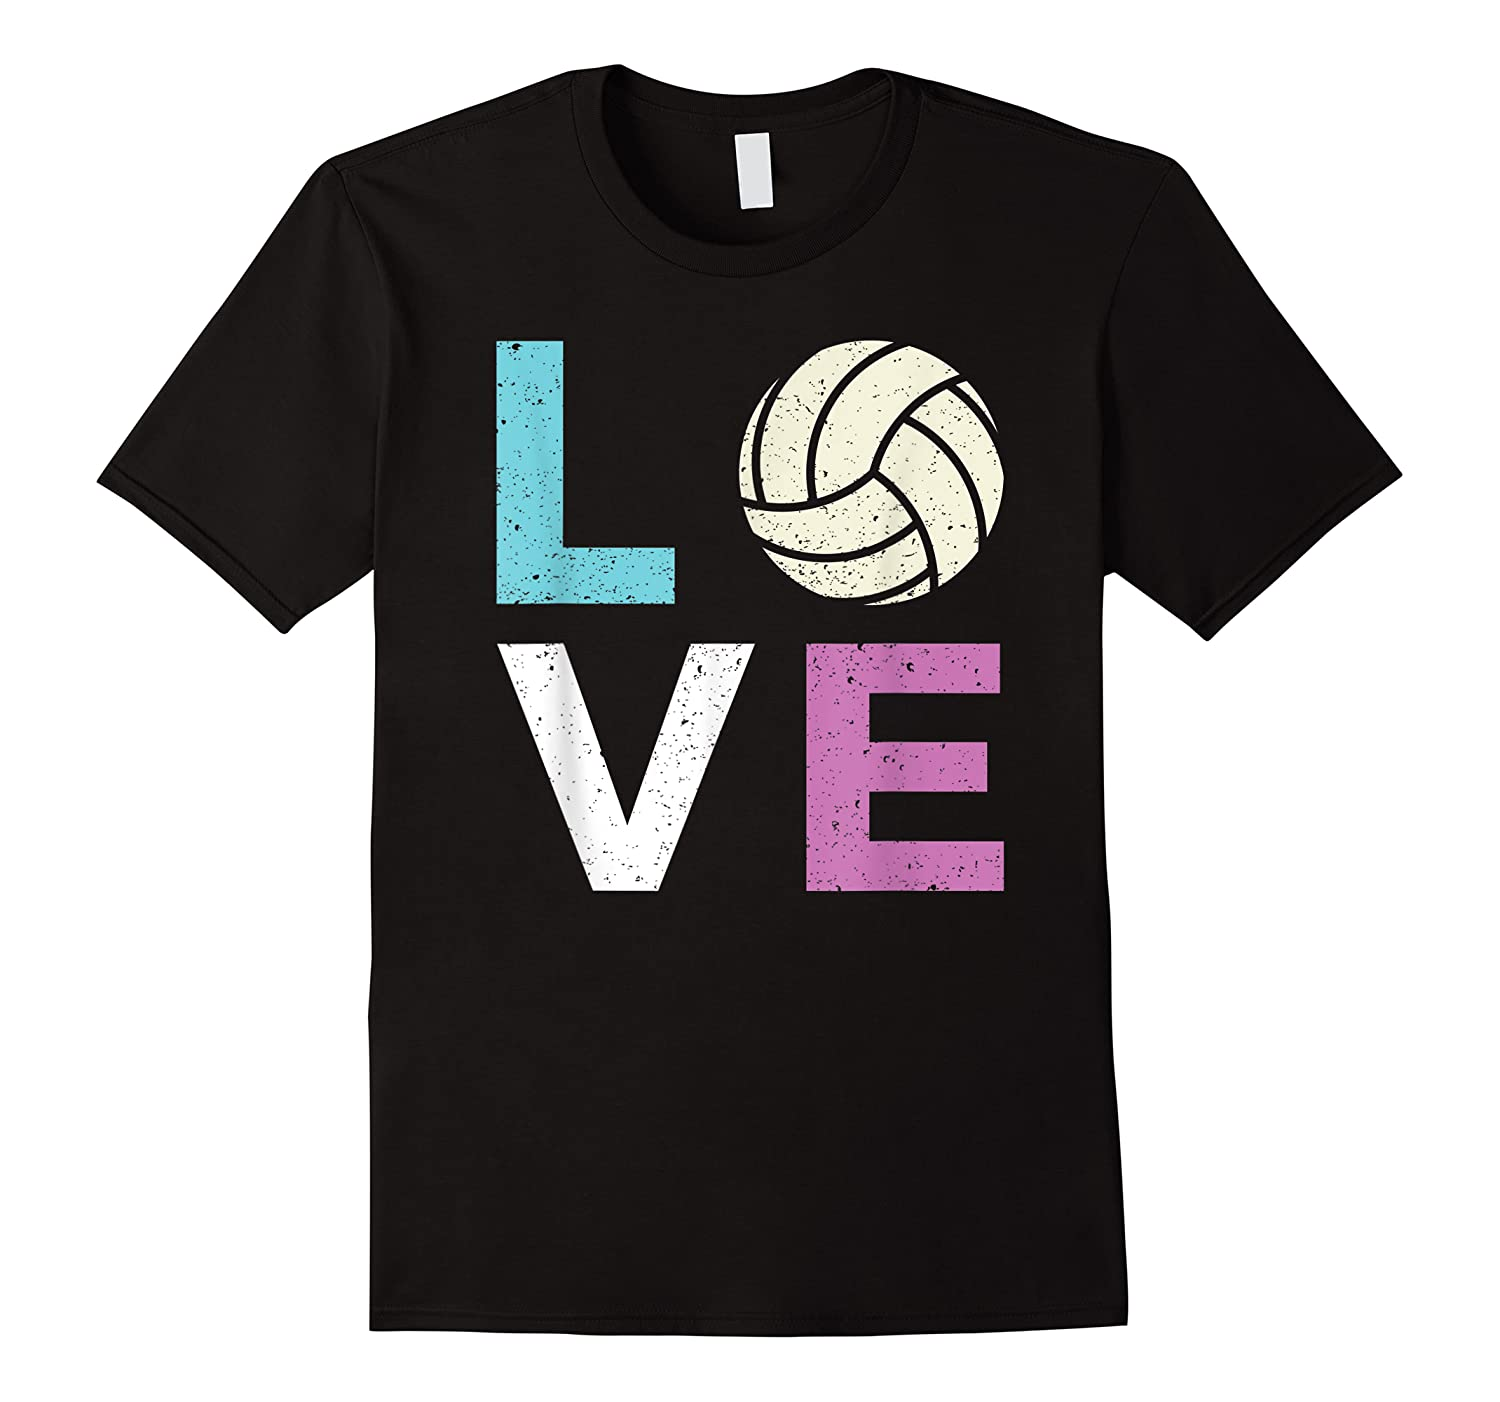 And A Volleyball Shirts